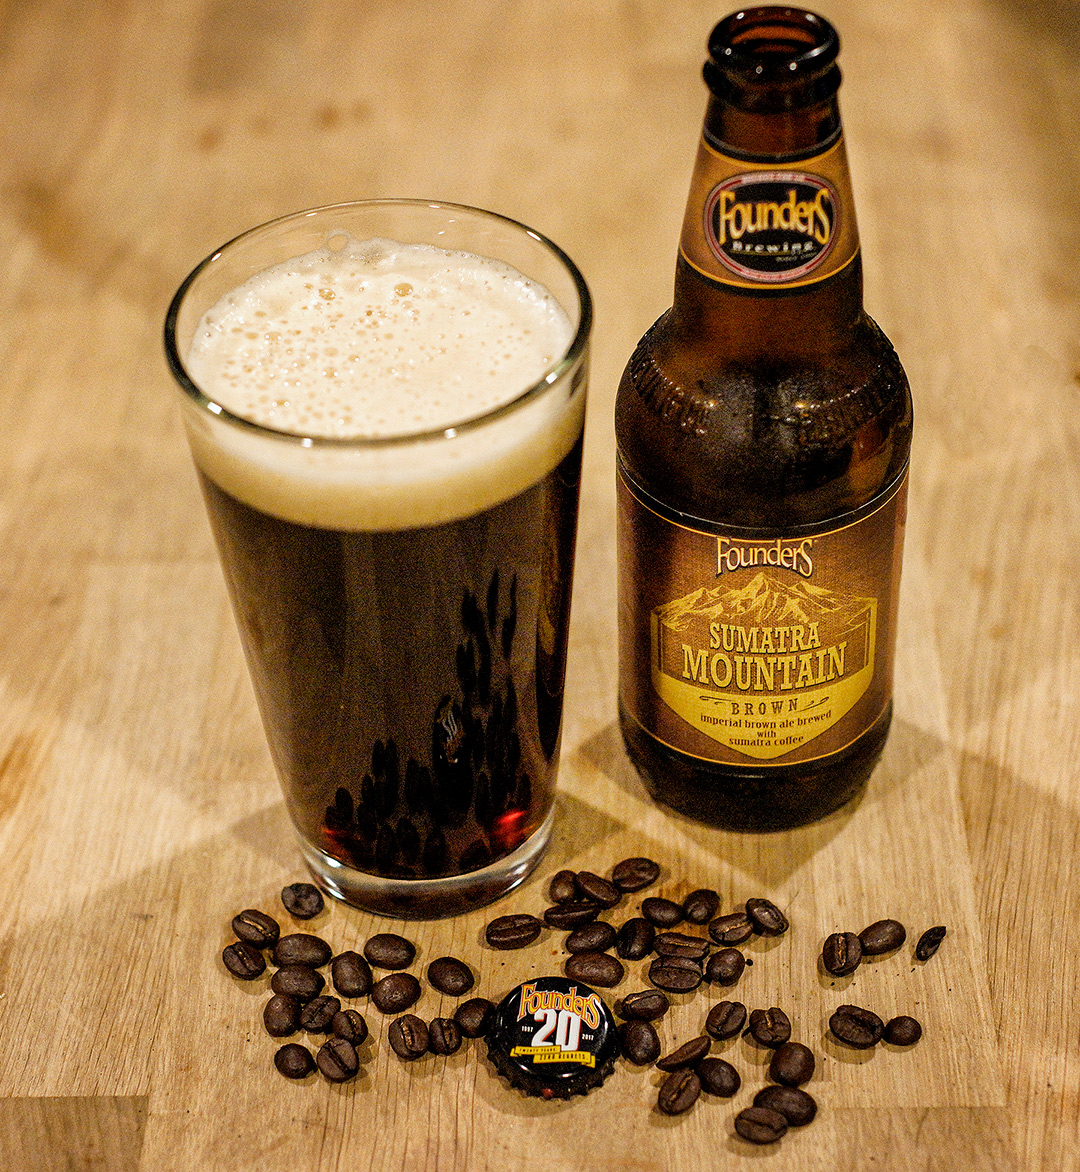 Founders Sumatra Mountain Brown